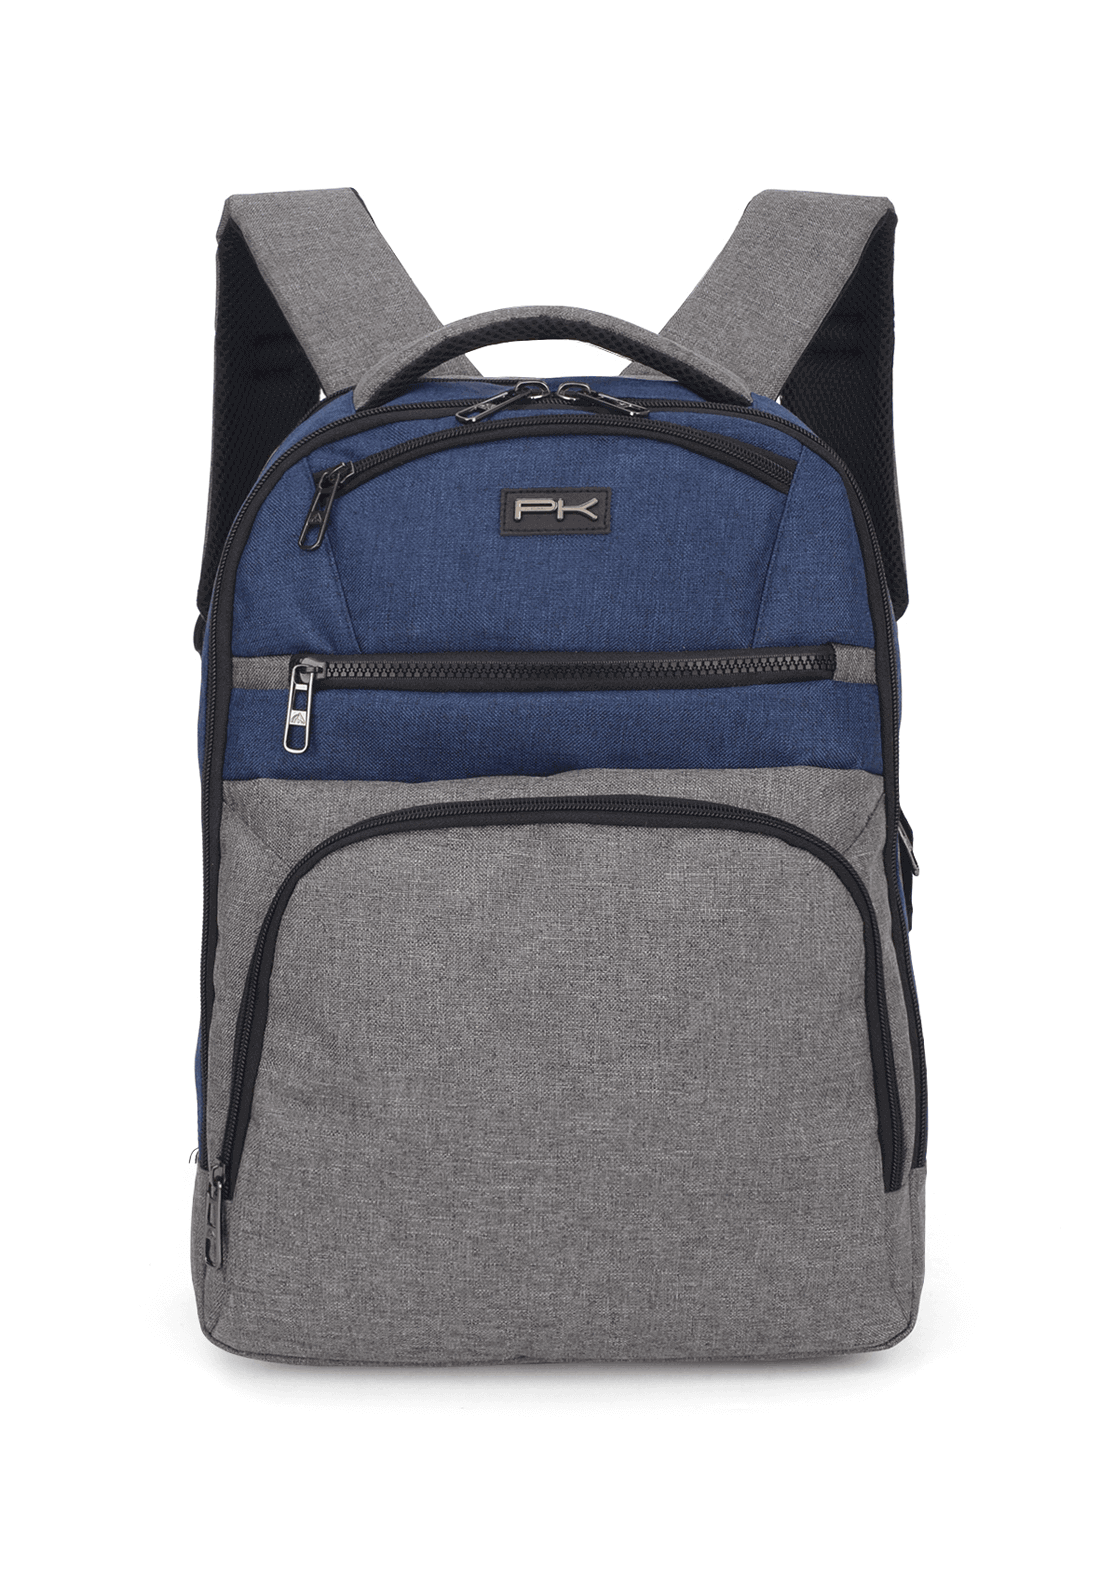 818fcca2d Mochila Polo King (notebook) - MN51595Pk - CKF STORE